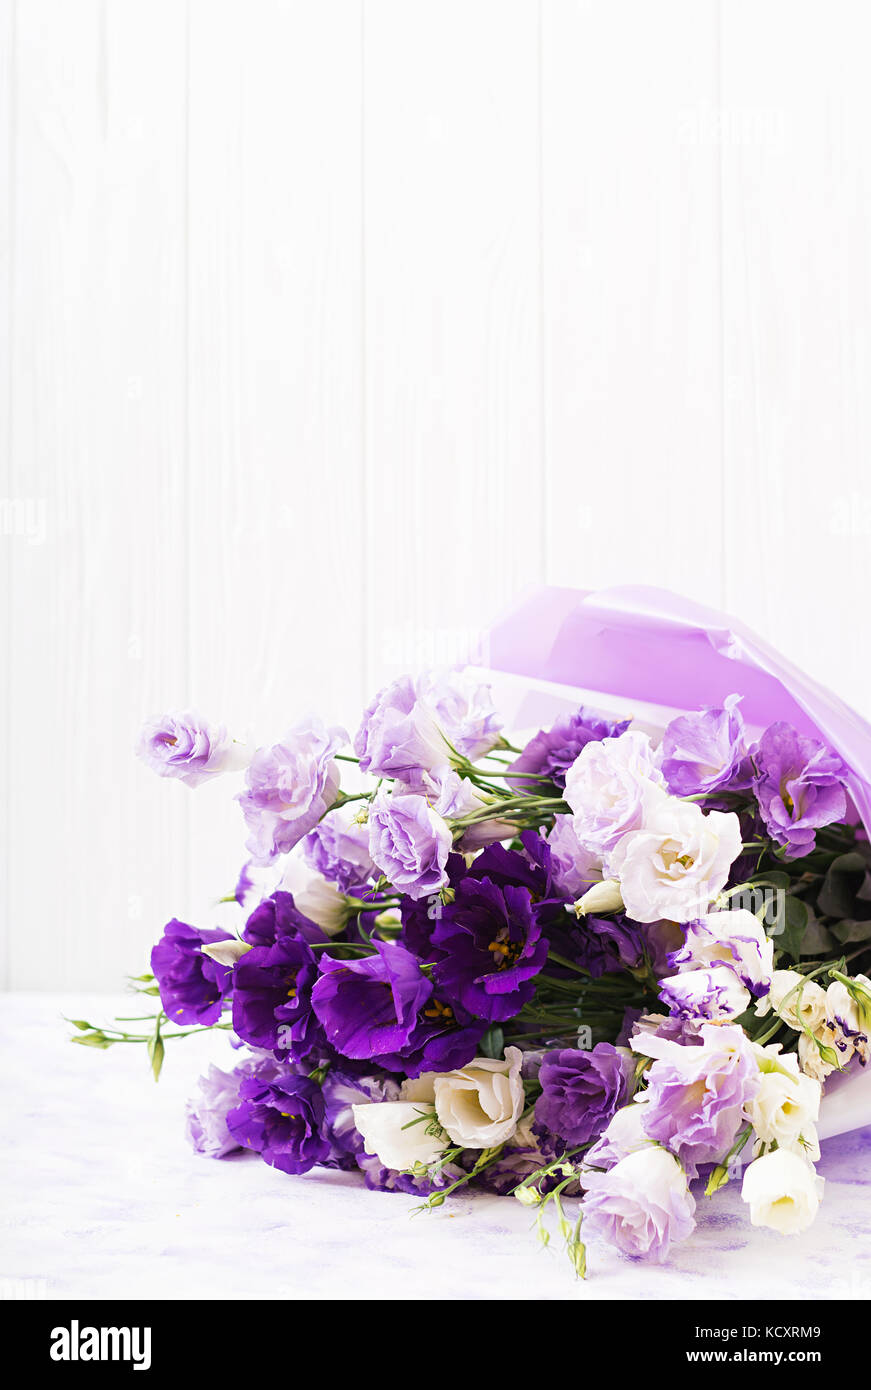 Beautiful Flowers Bouquet Mix Of White Purple And Violet Eustoma